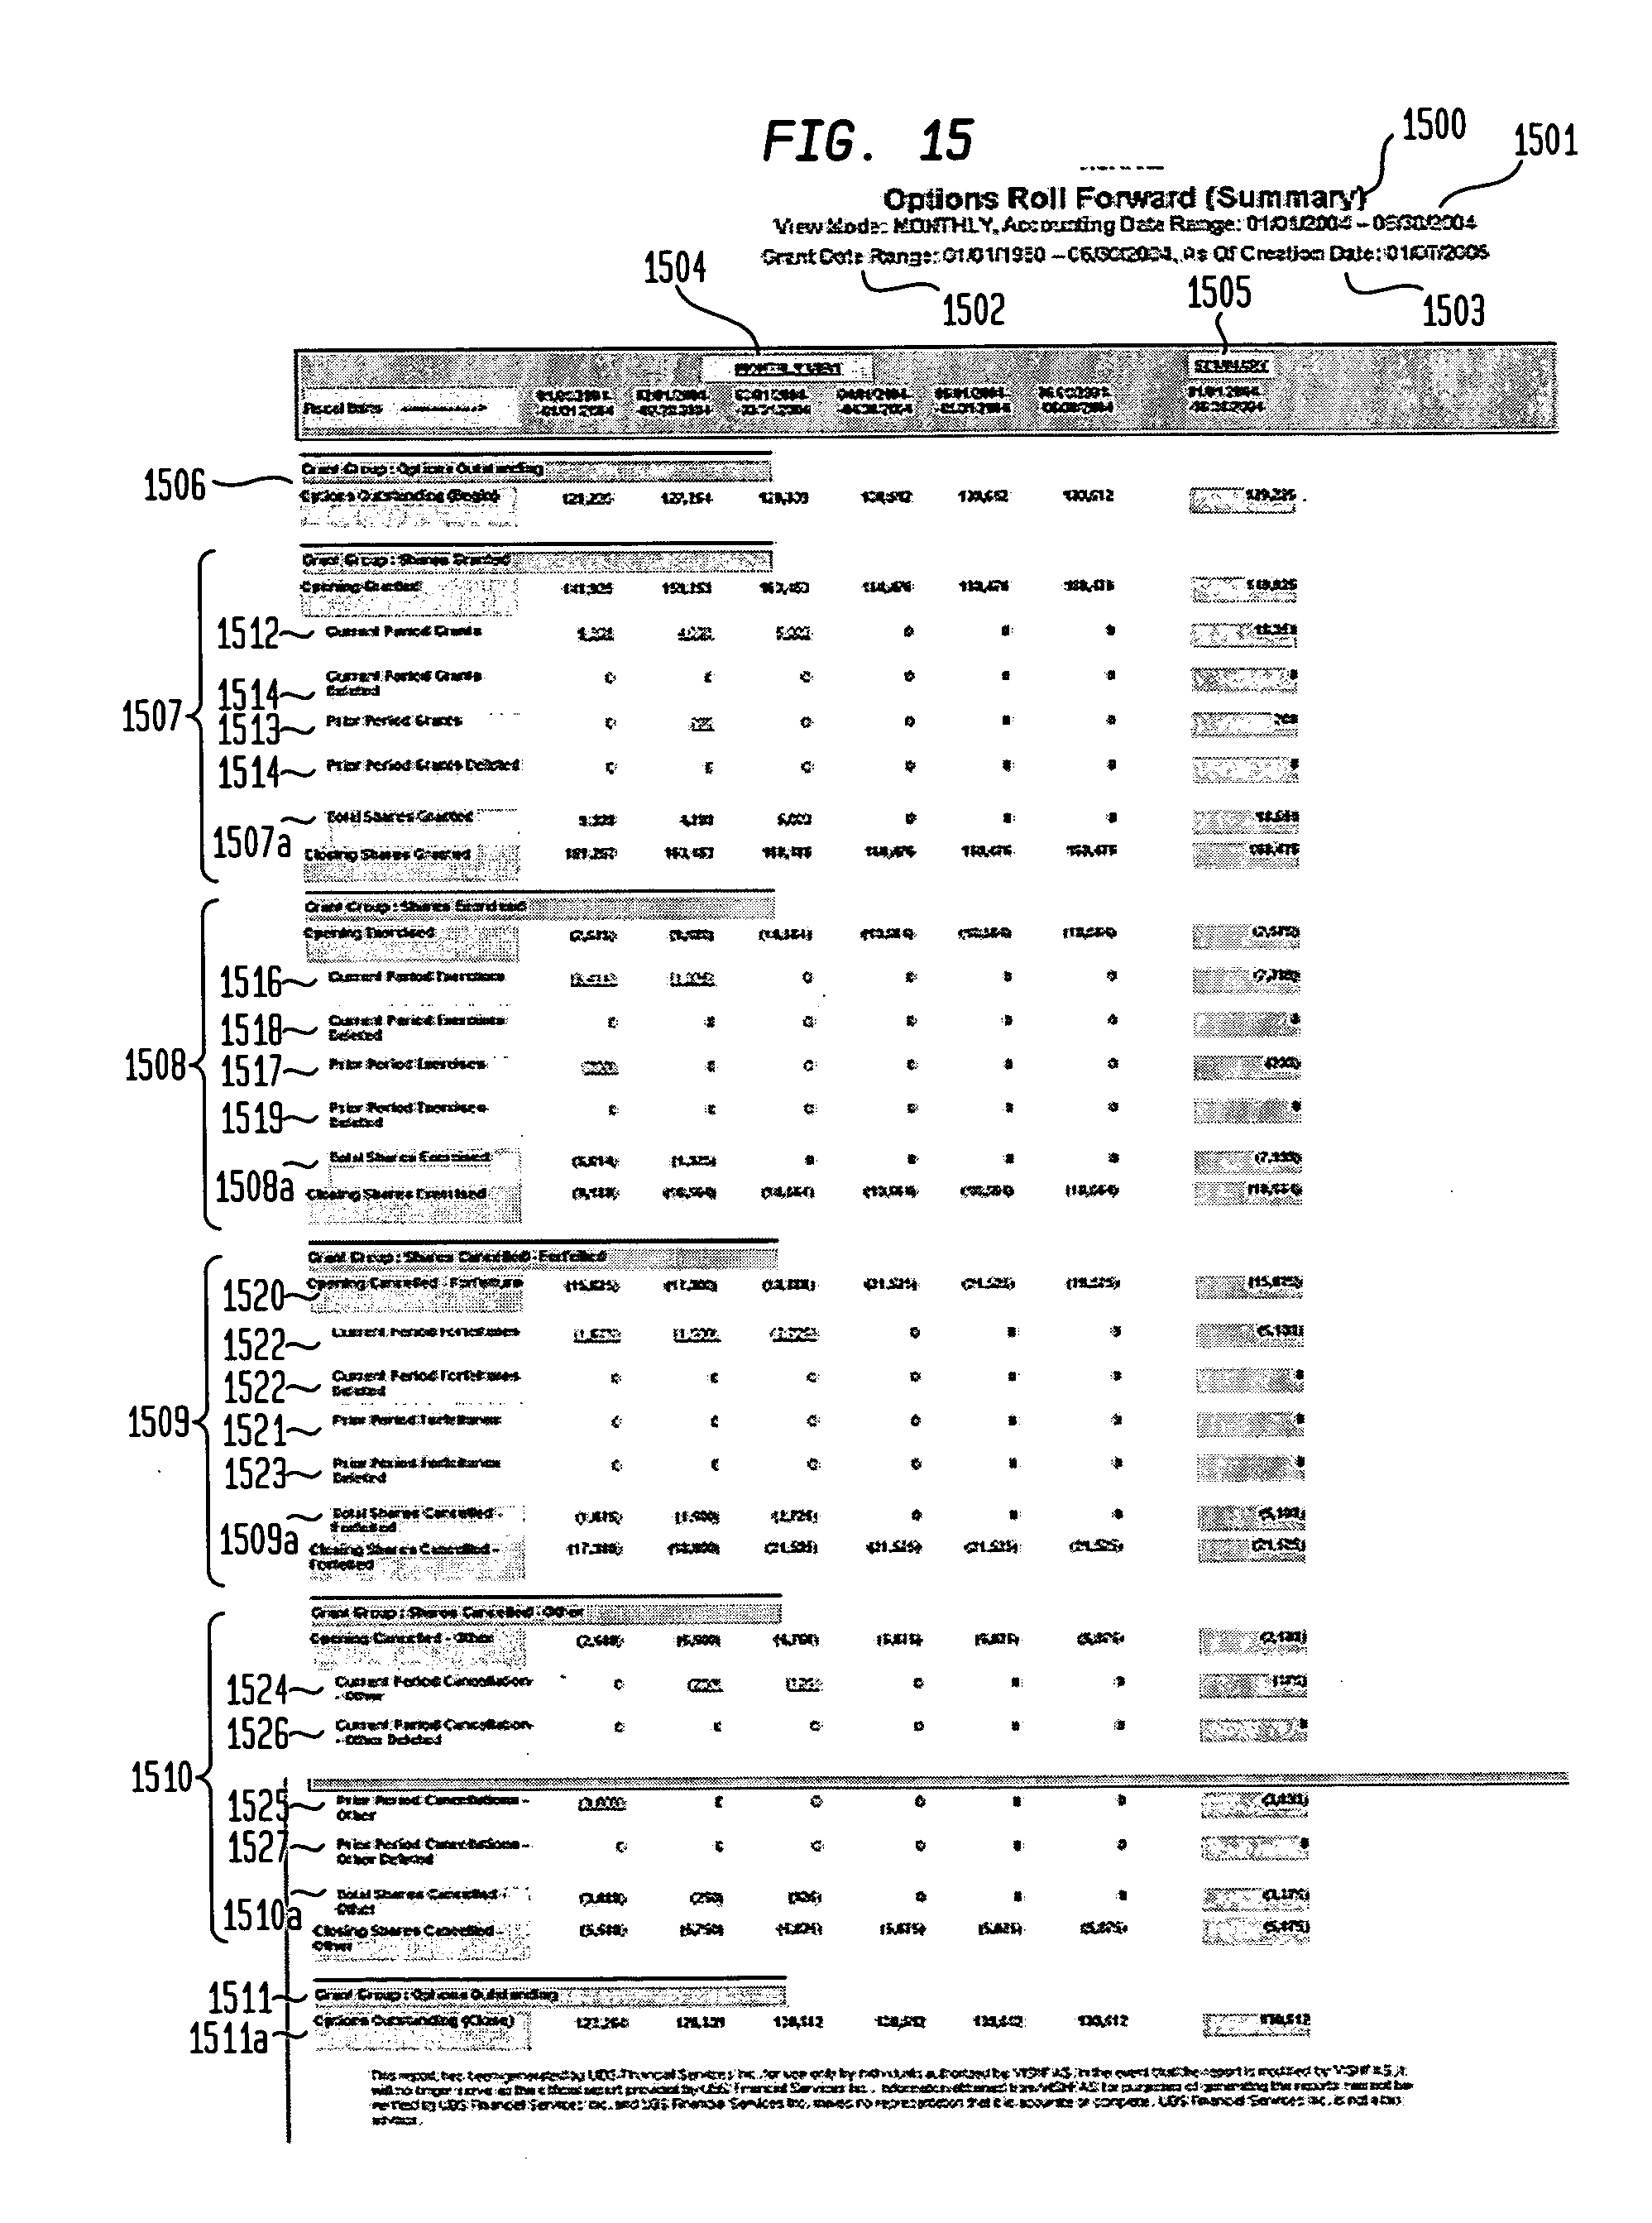 Accounting for employee stock options and other contingent equity claims